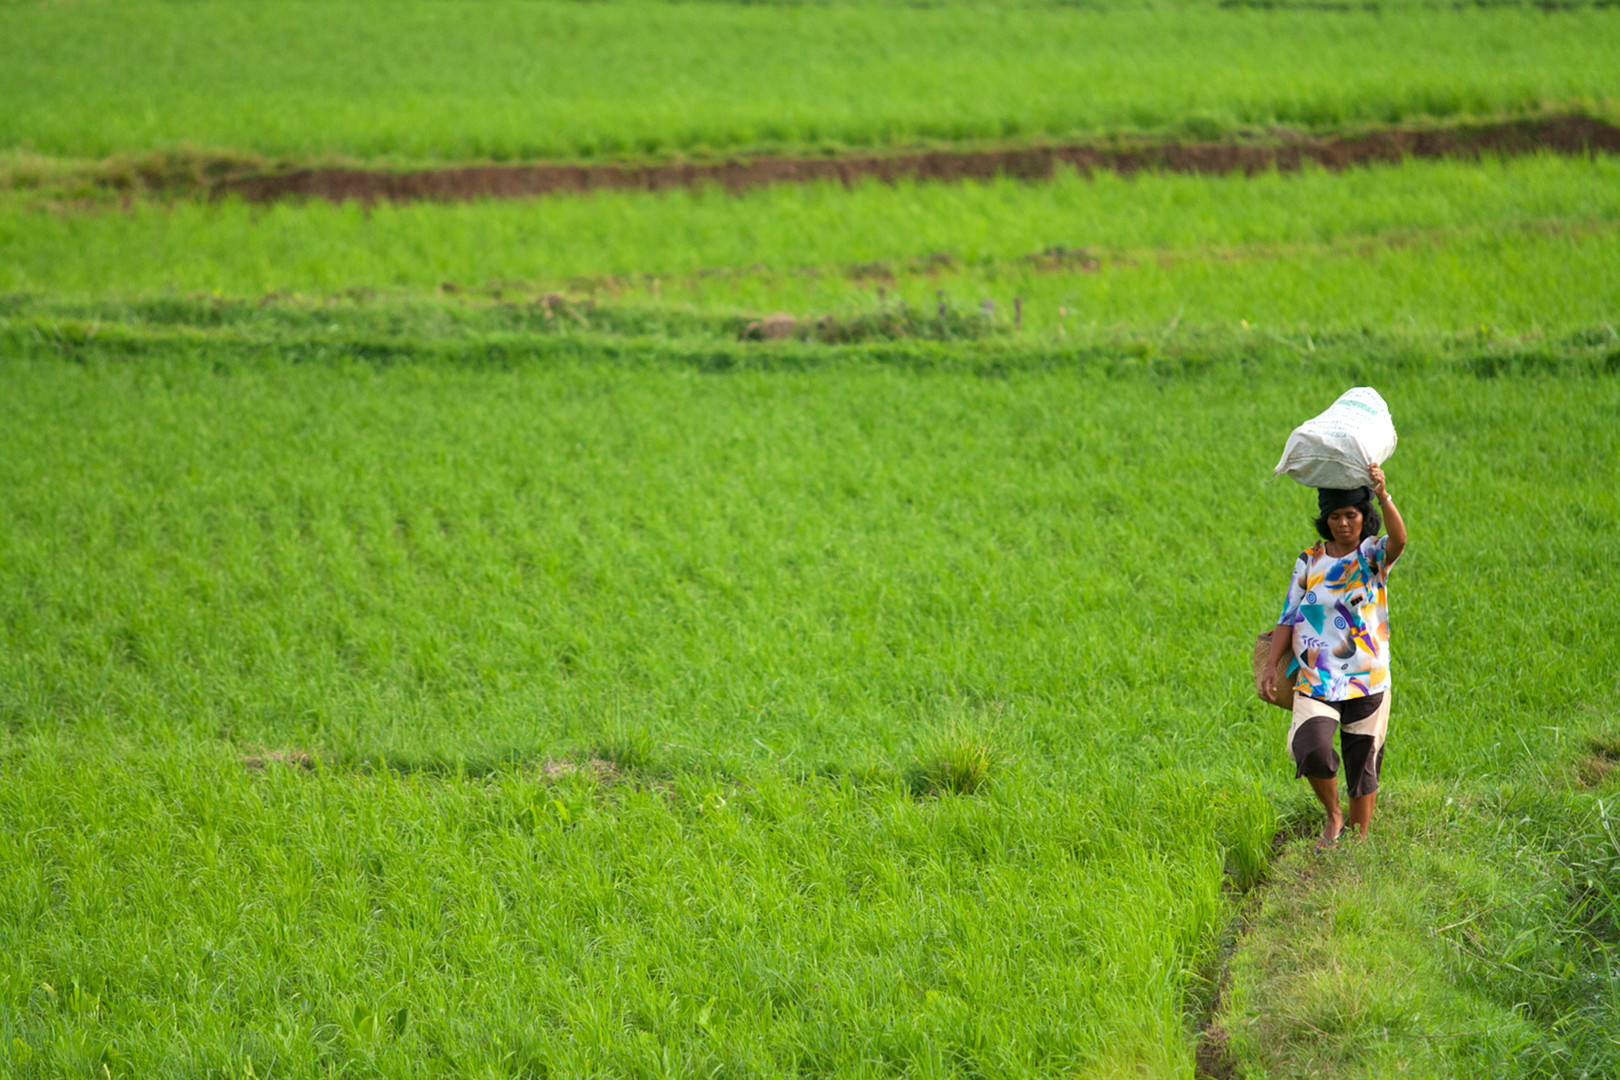 Crossing the Paddy Field